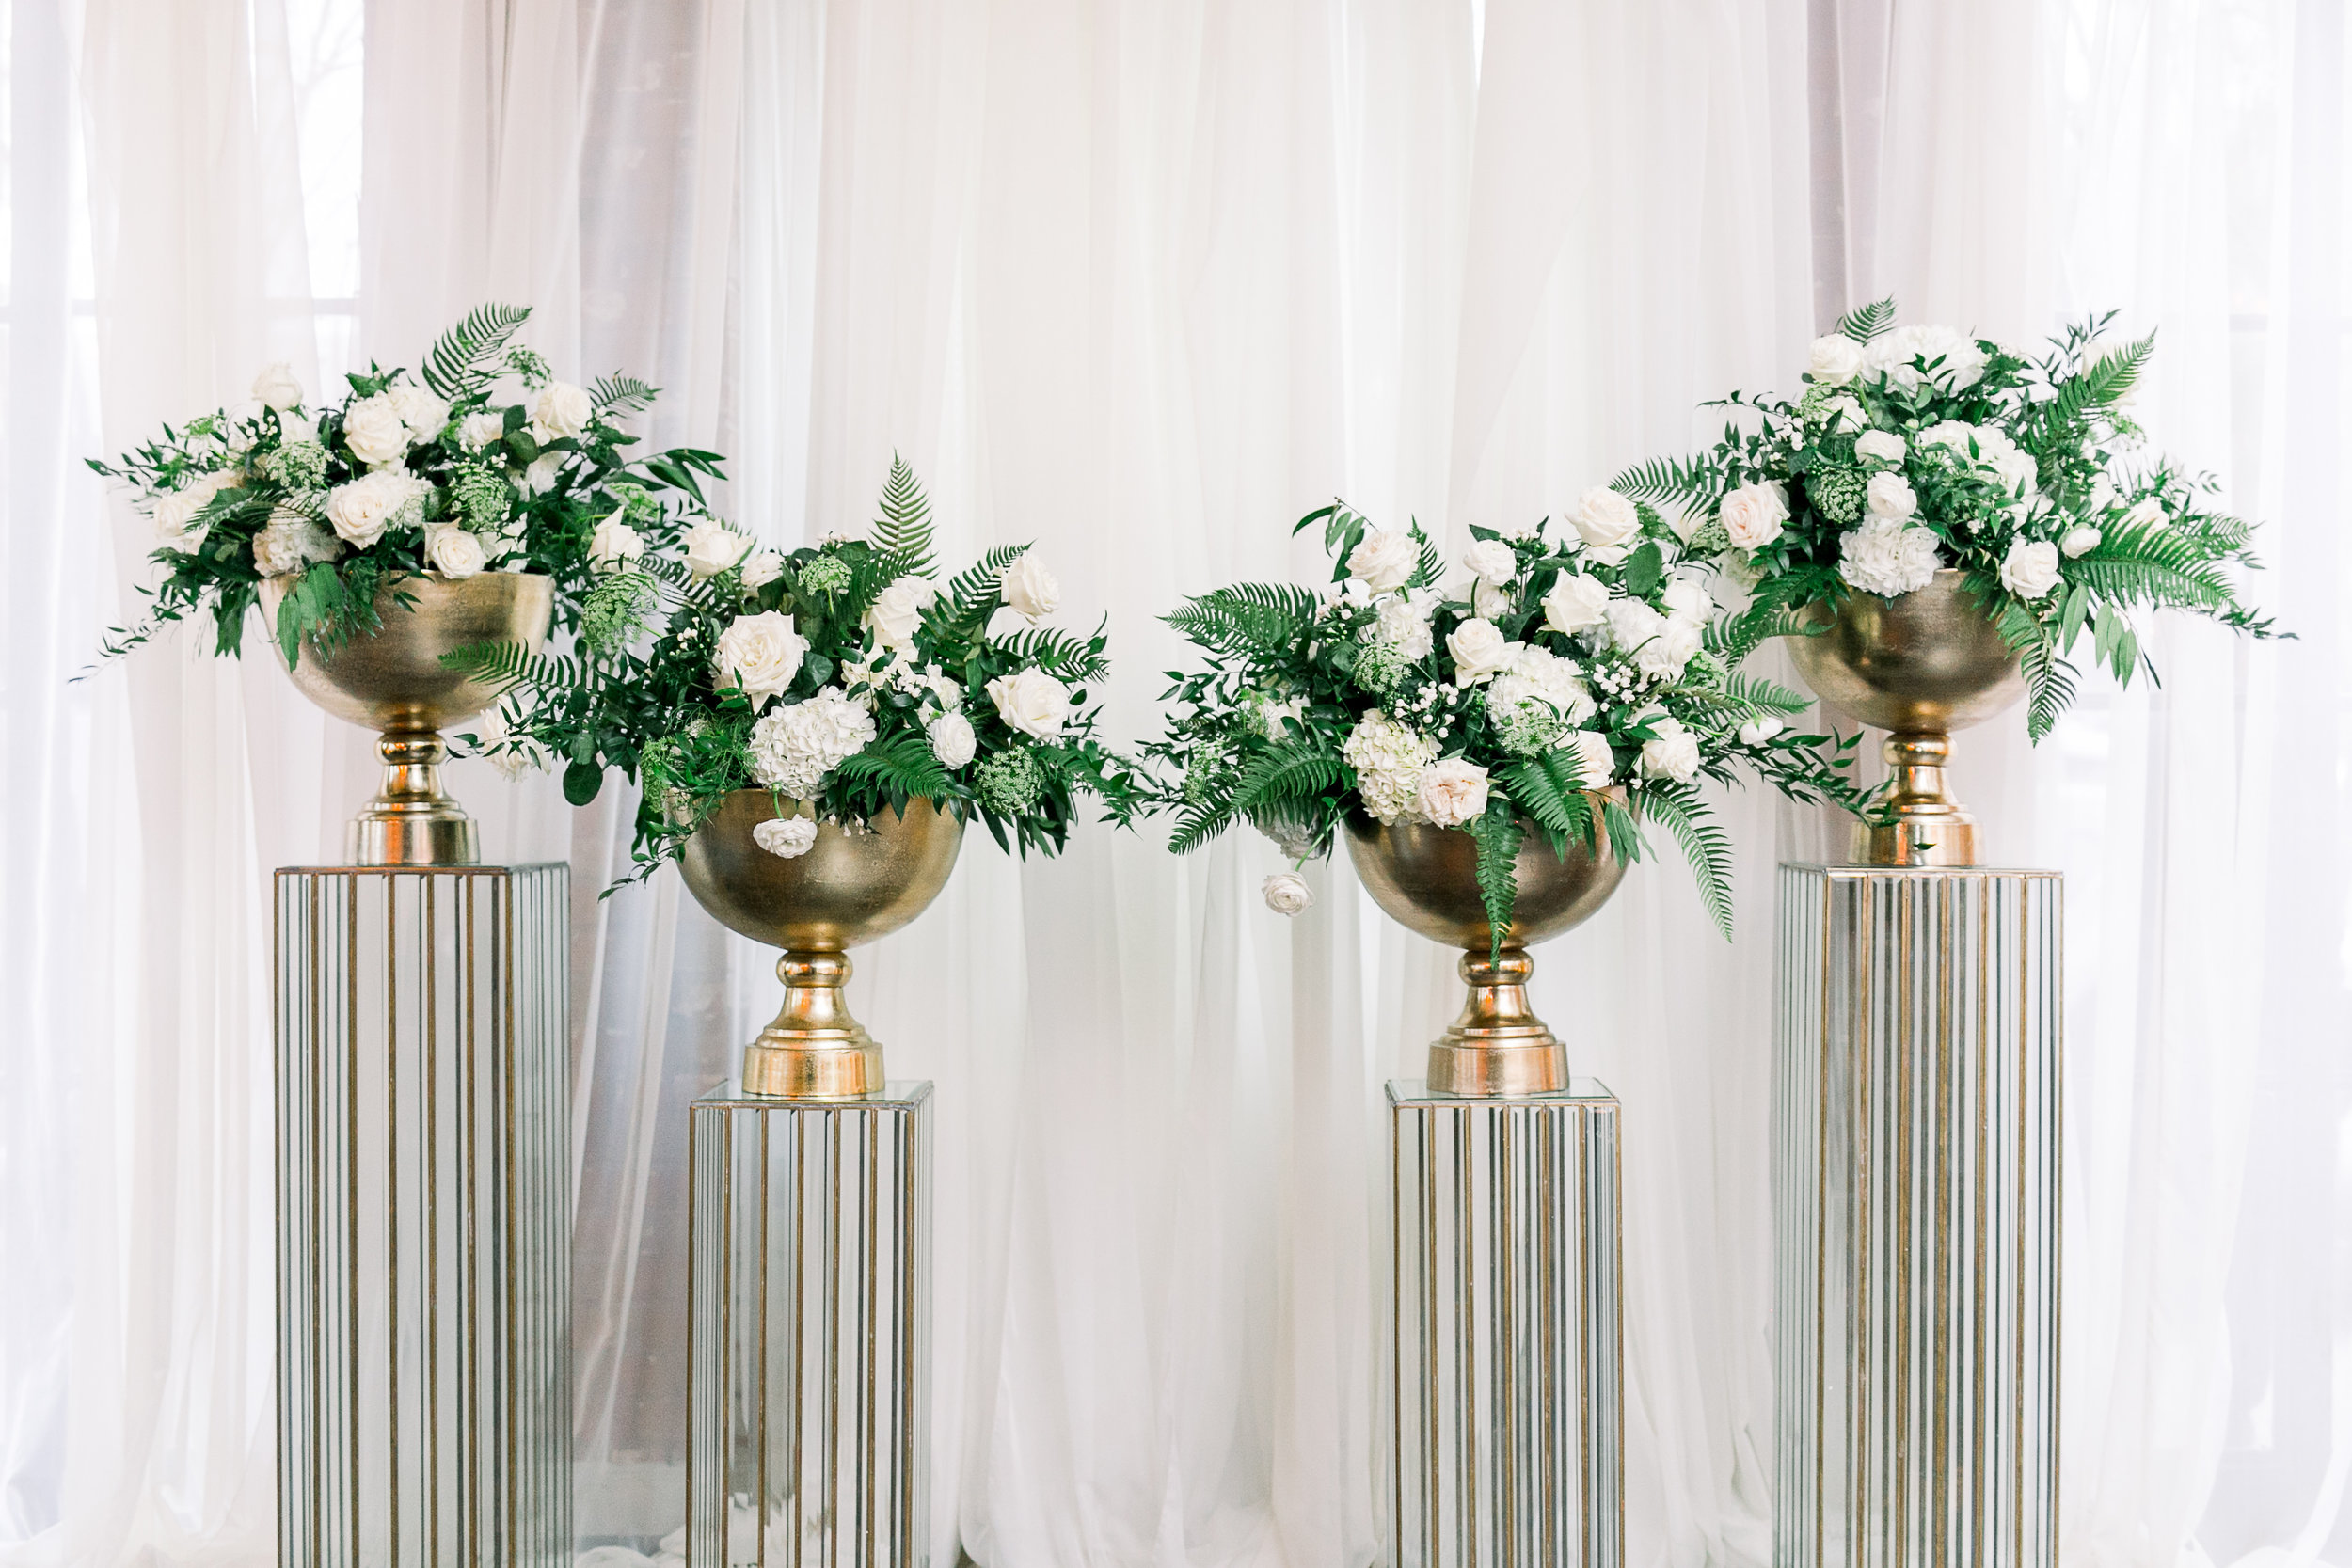 Ceremony backdrop at Station 3 | Glass Columns with green and white floral